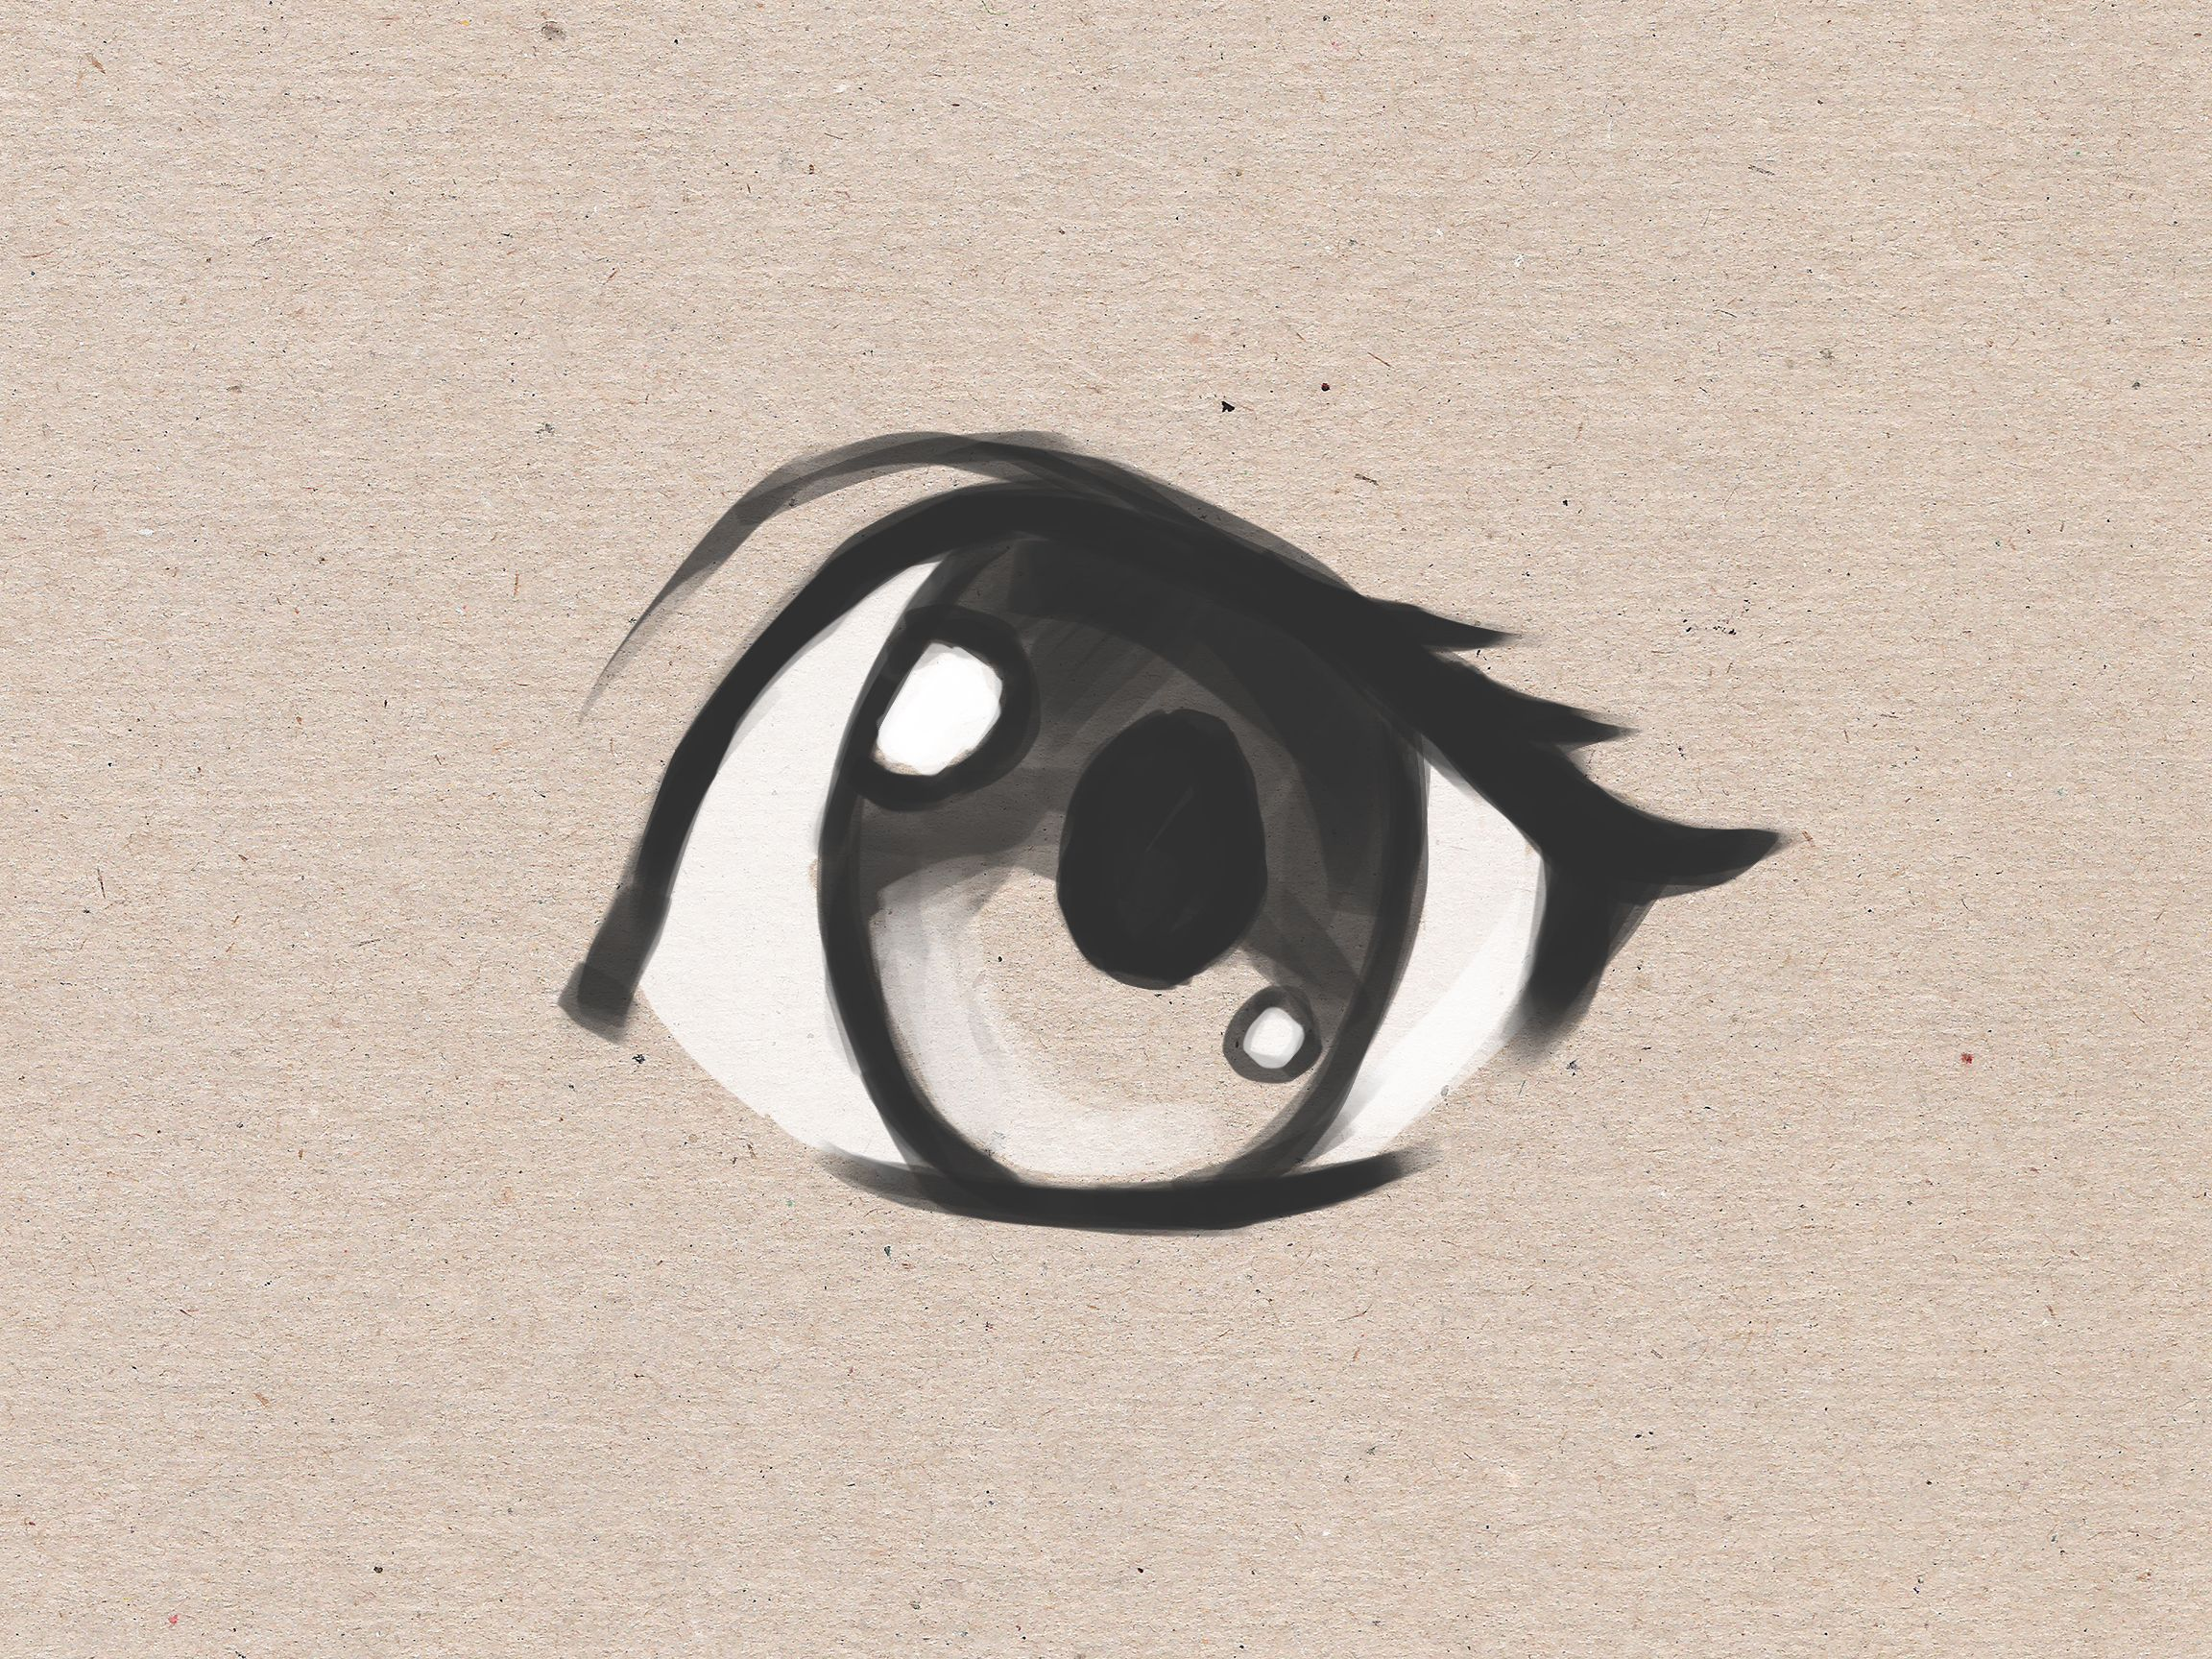 Draw Simple Anime Eyes Easy anime eyes, Eye drawing